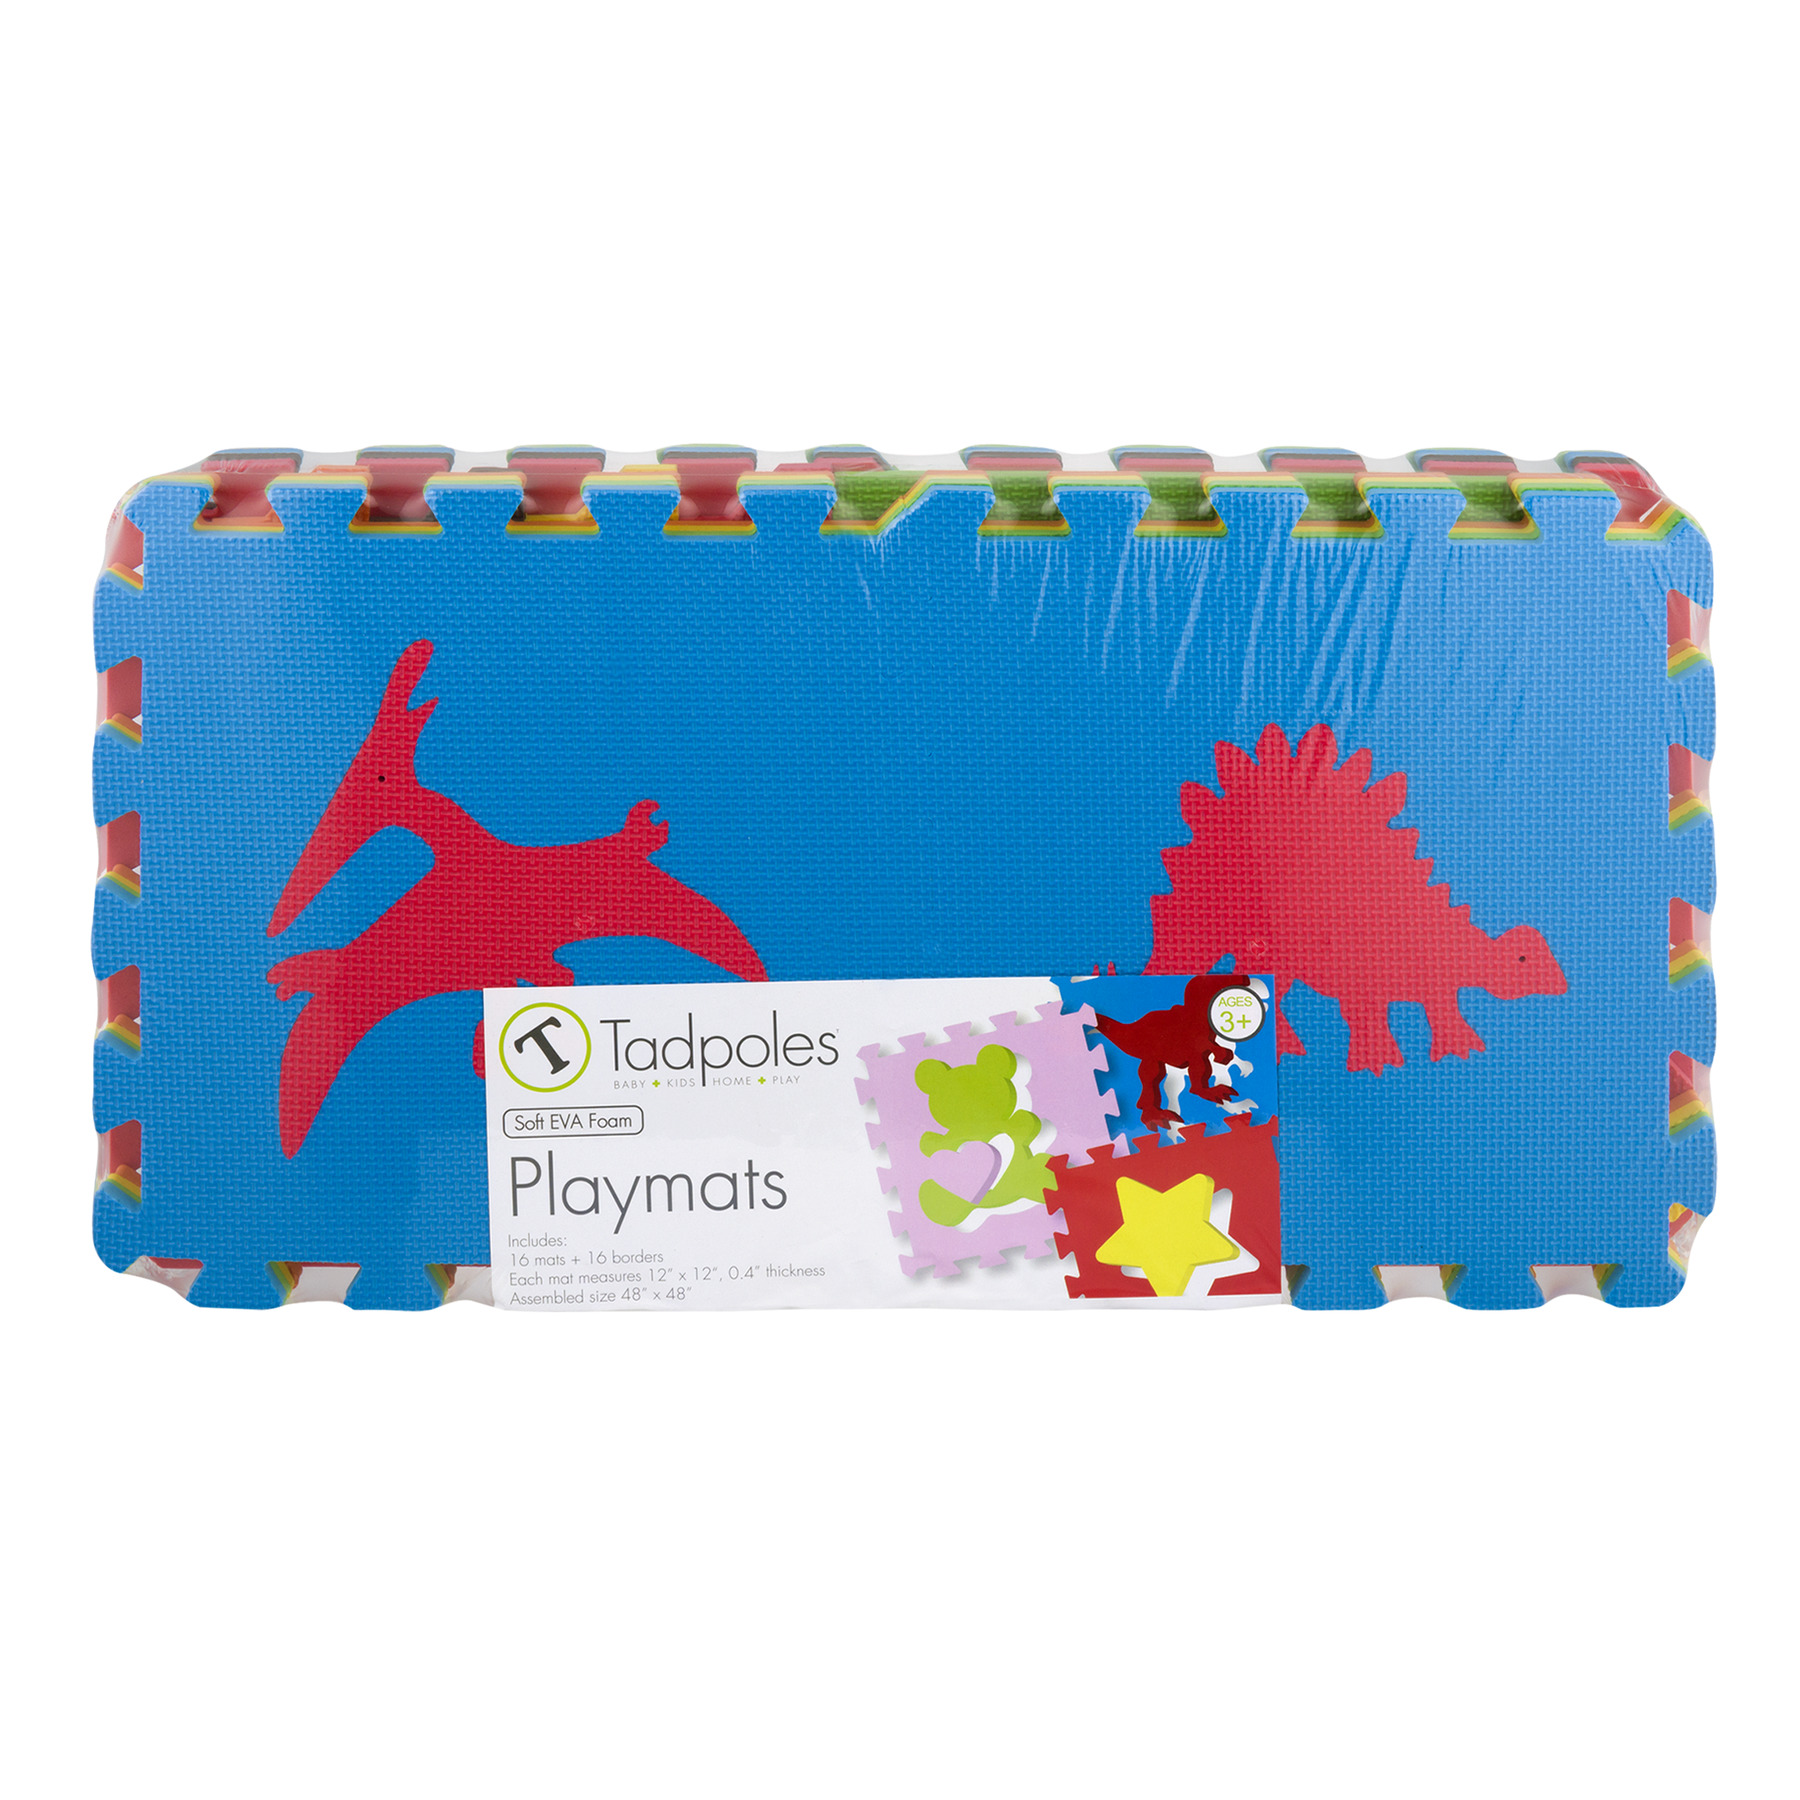 Tadpoles Playmats, 32.0 PIECE(S)